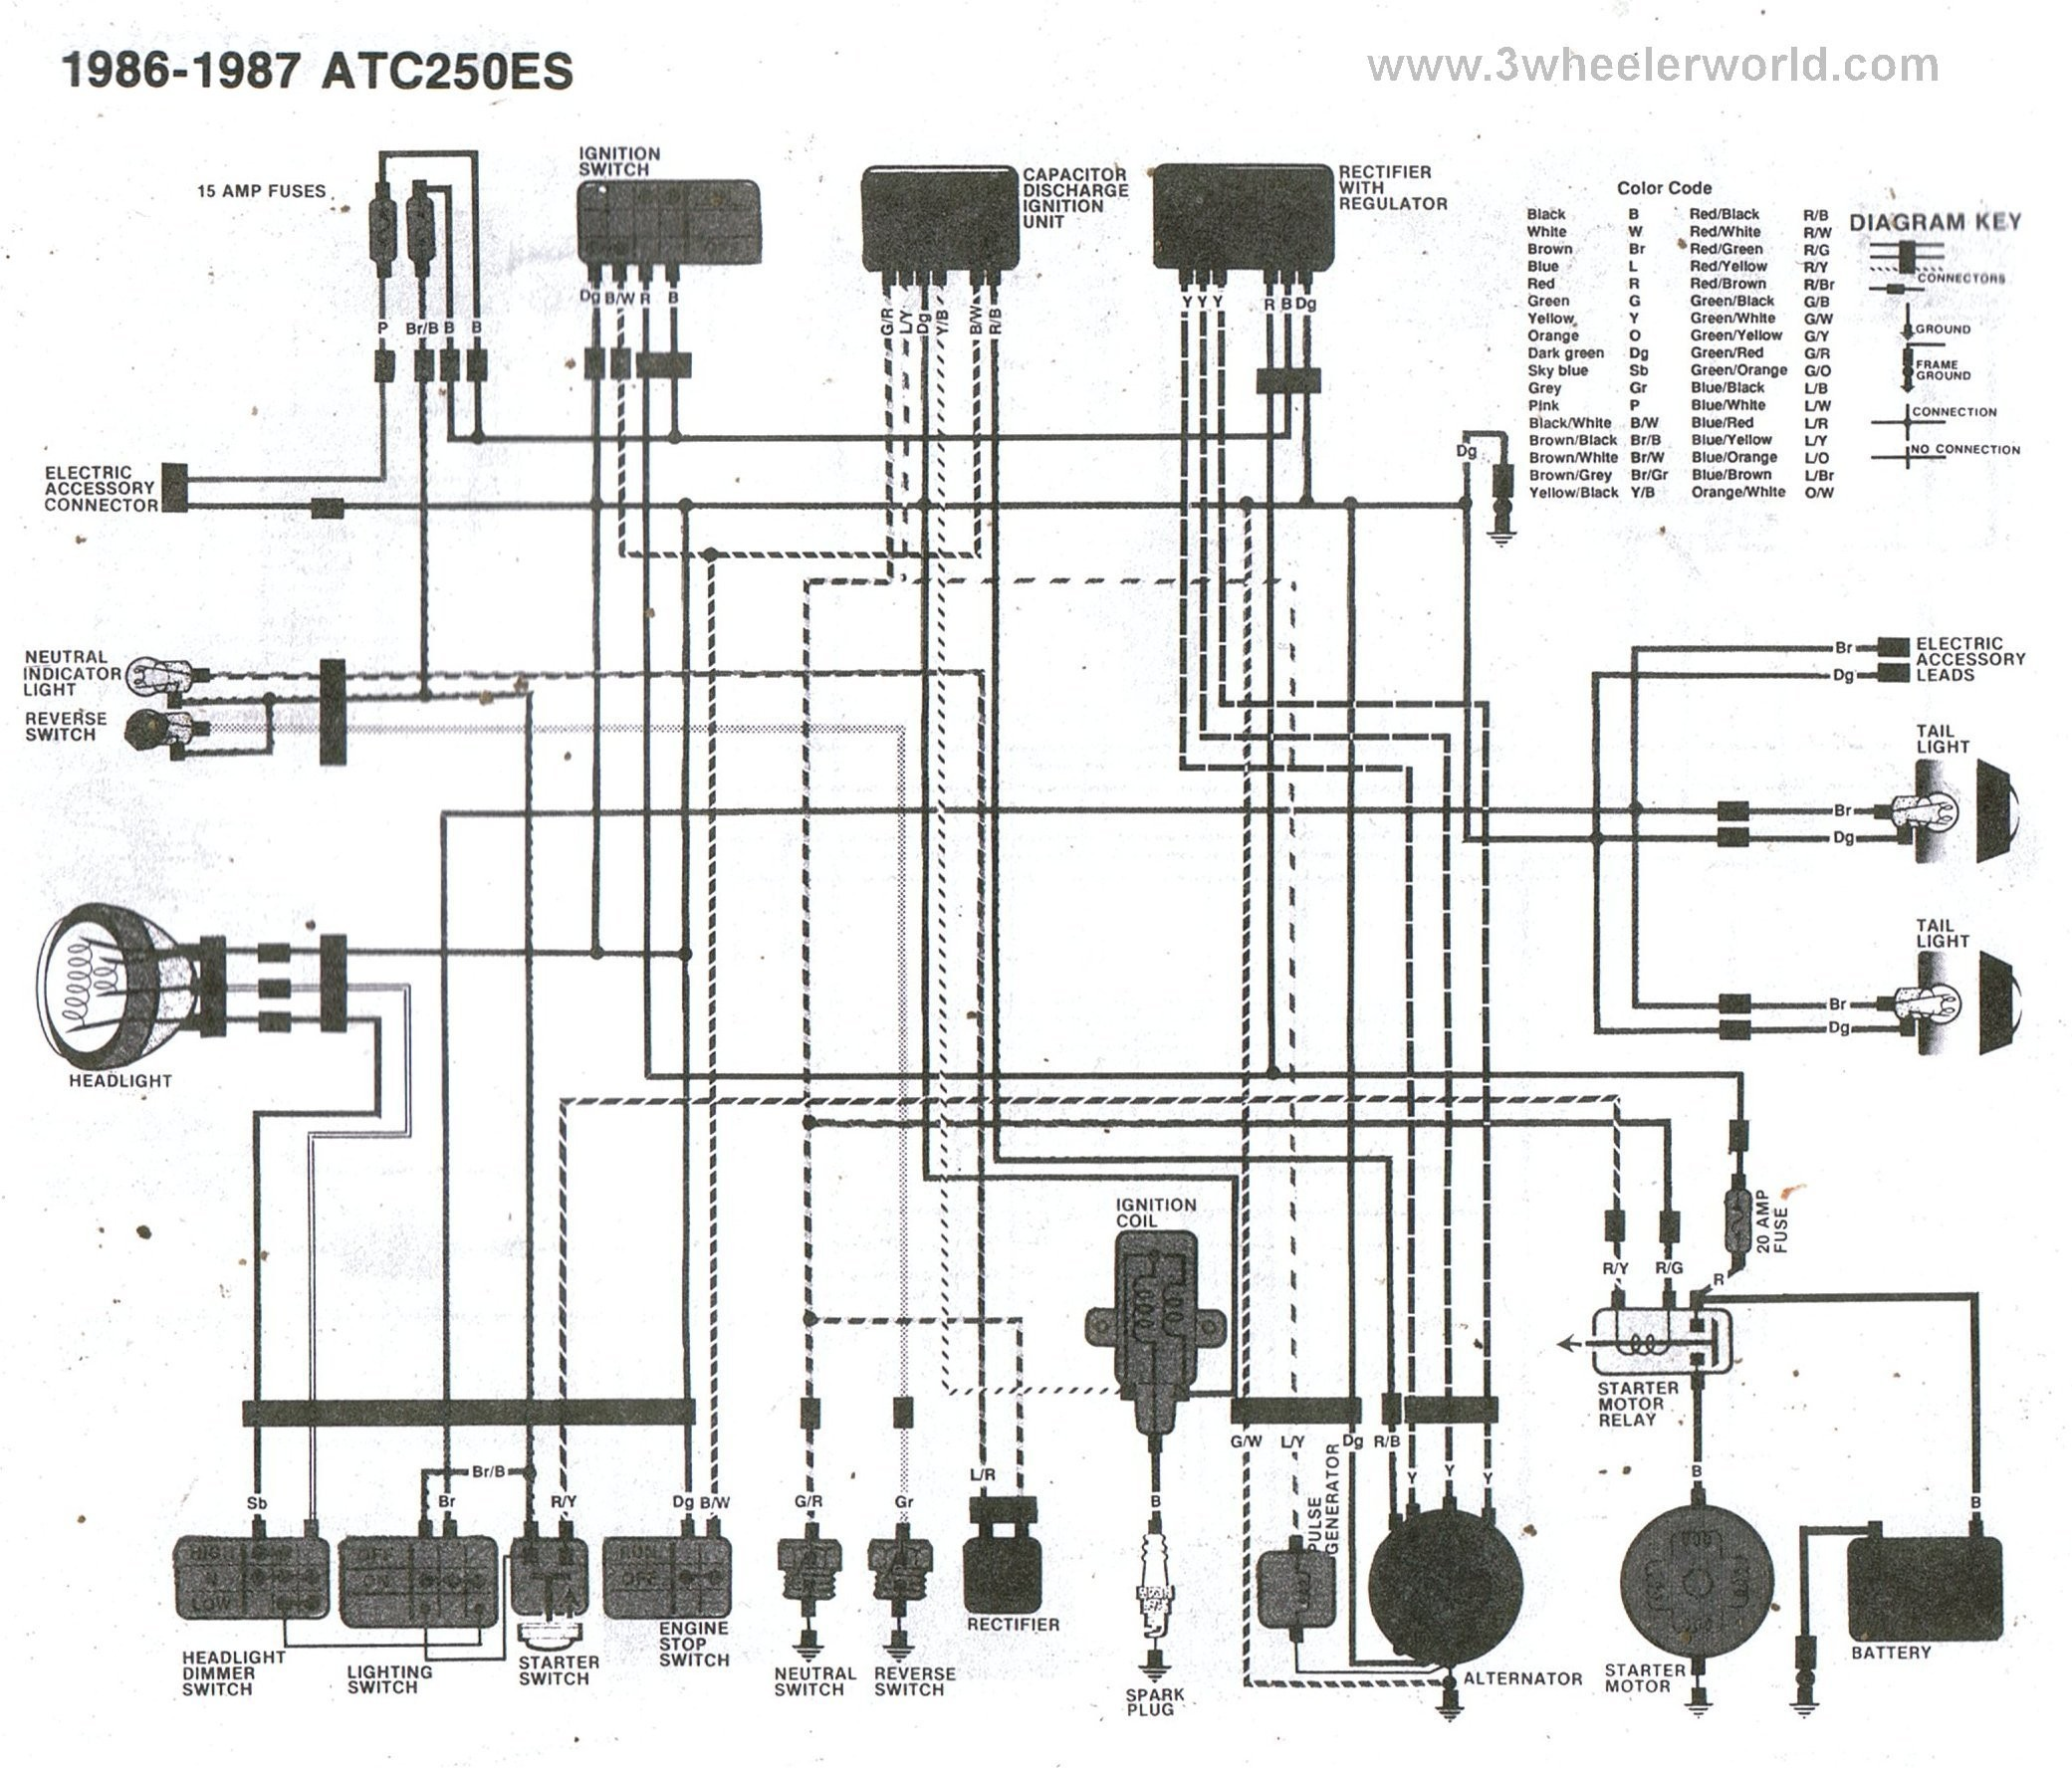 1977 honda ct70 wiring diagram 2002 mitsubishi galant fuses box trx 70 trusted online libraries schematic trx70